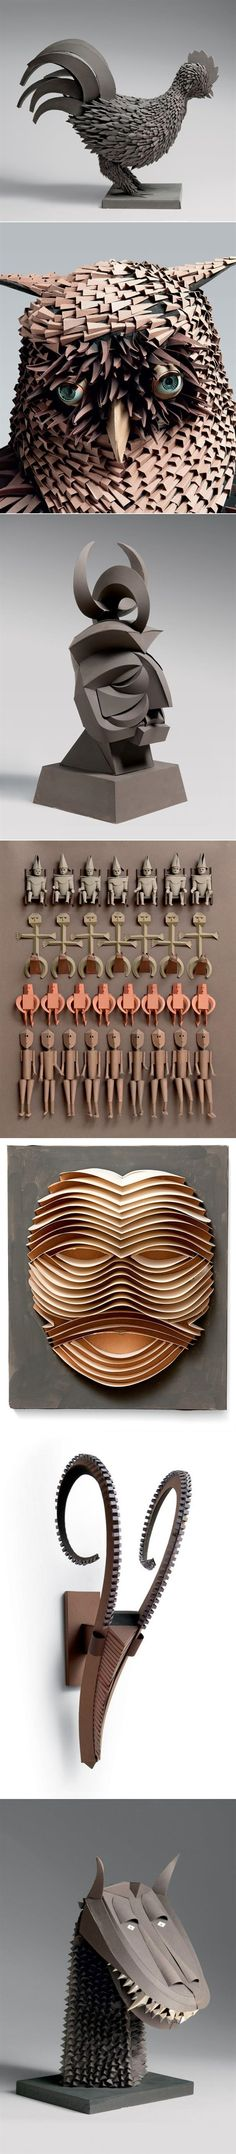 Paper sculptures by Irving Harper